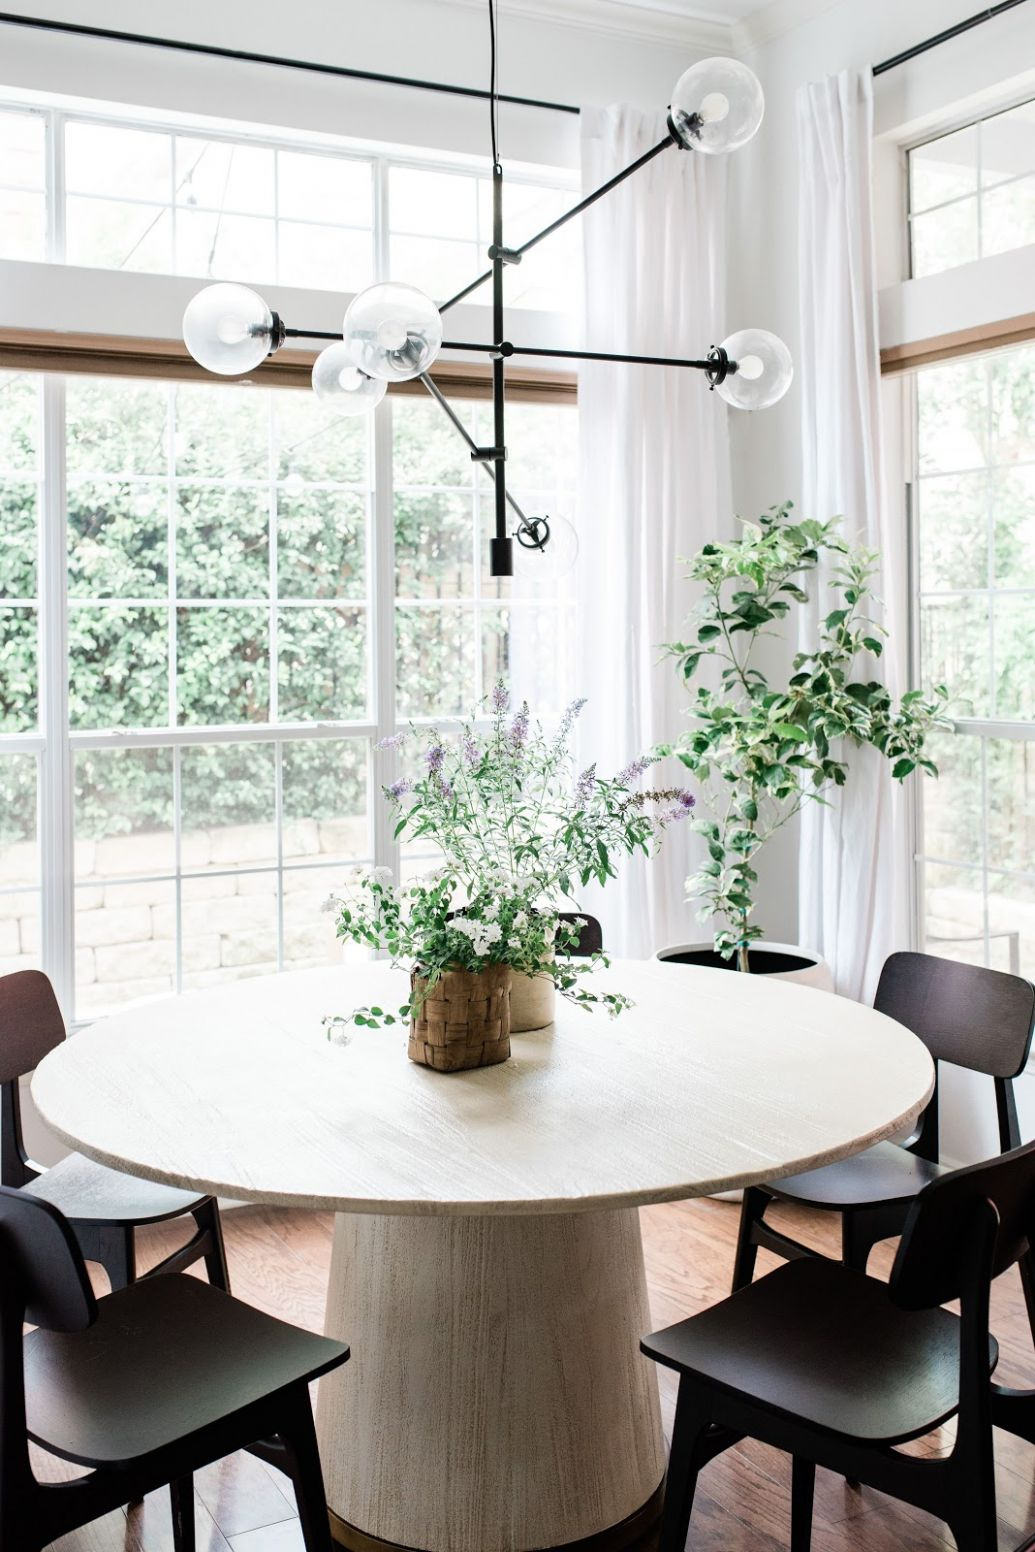 11 Small Dining Room Ideas to Make the Most of Your Space